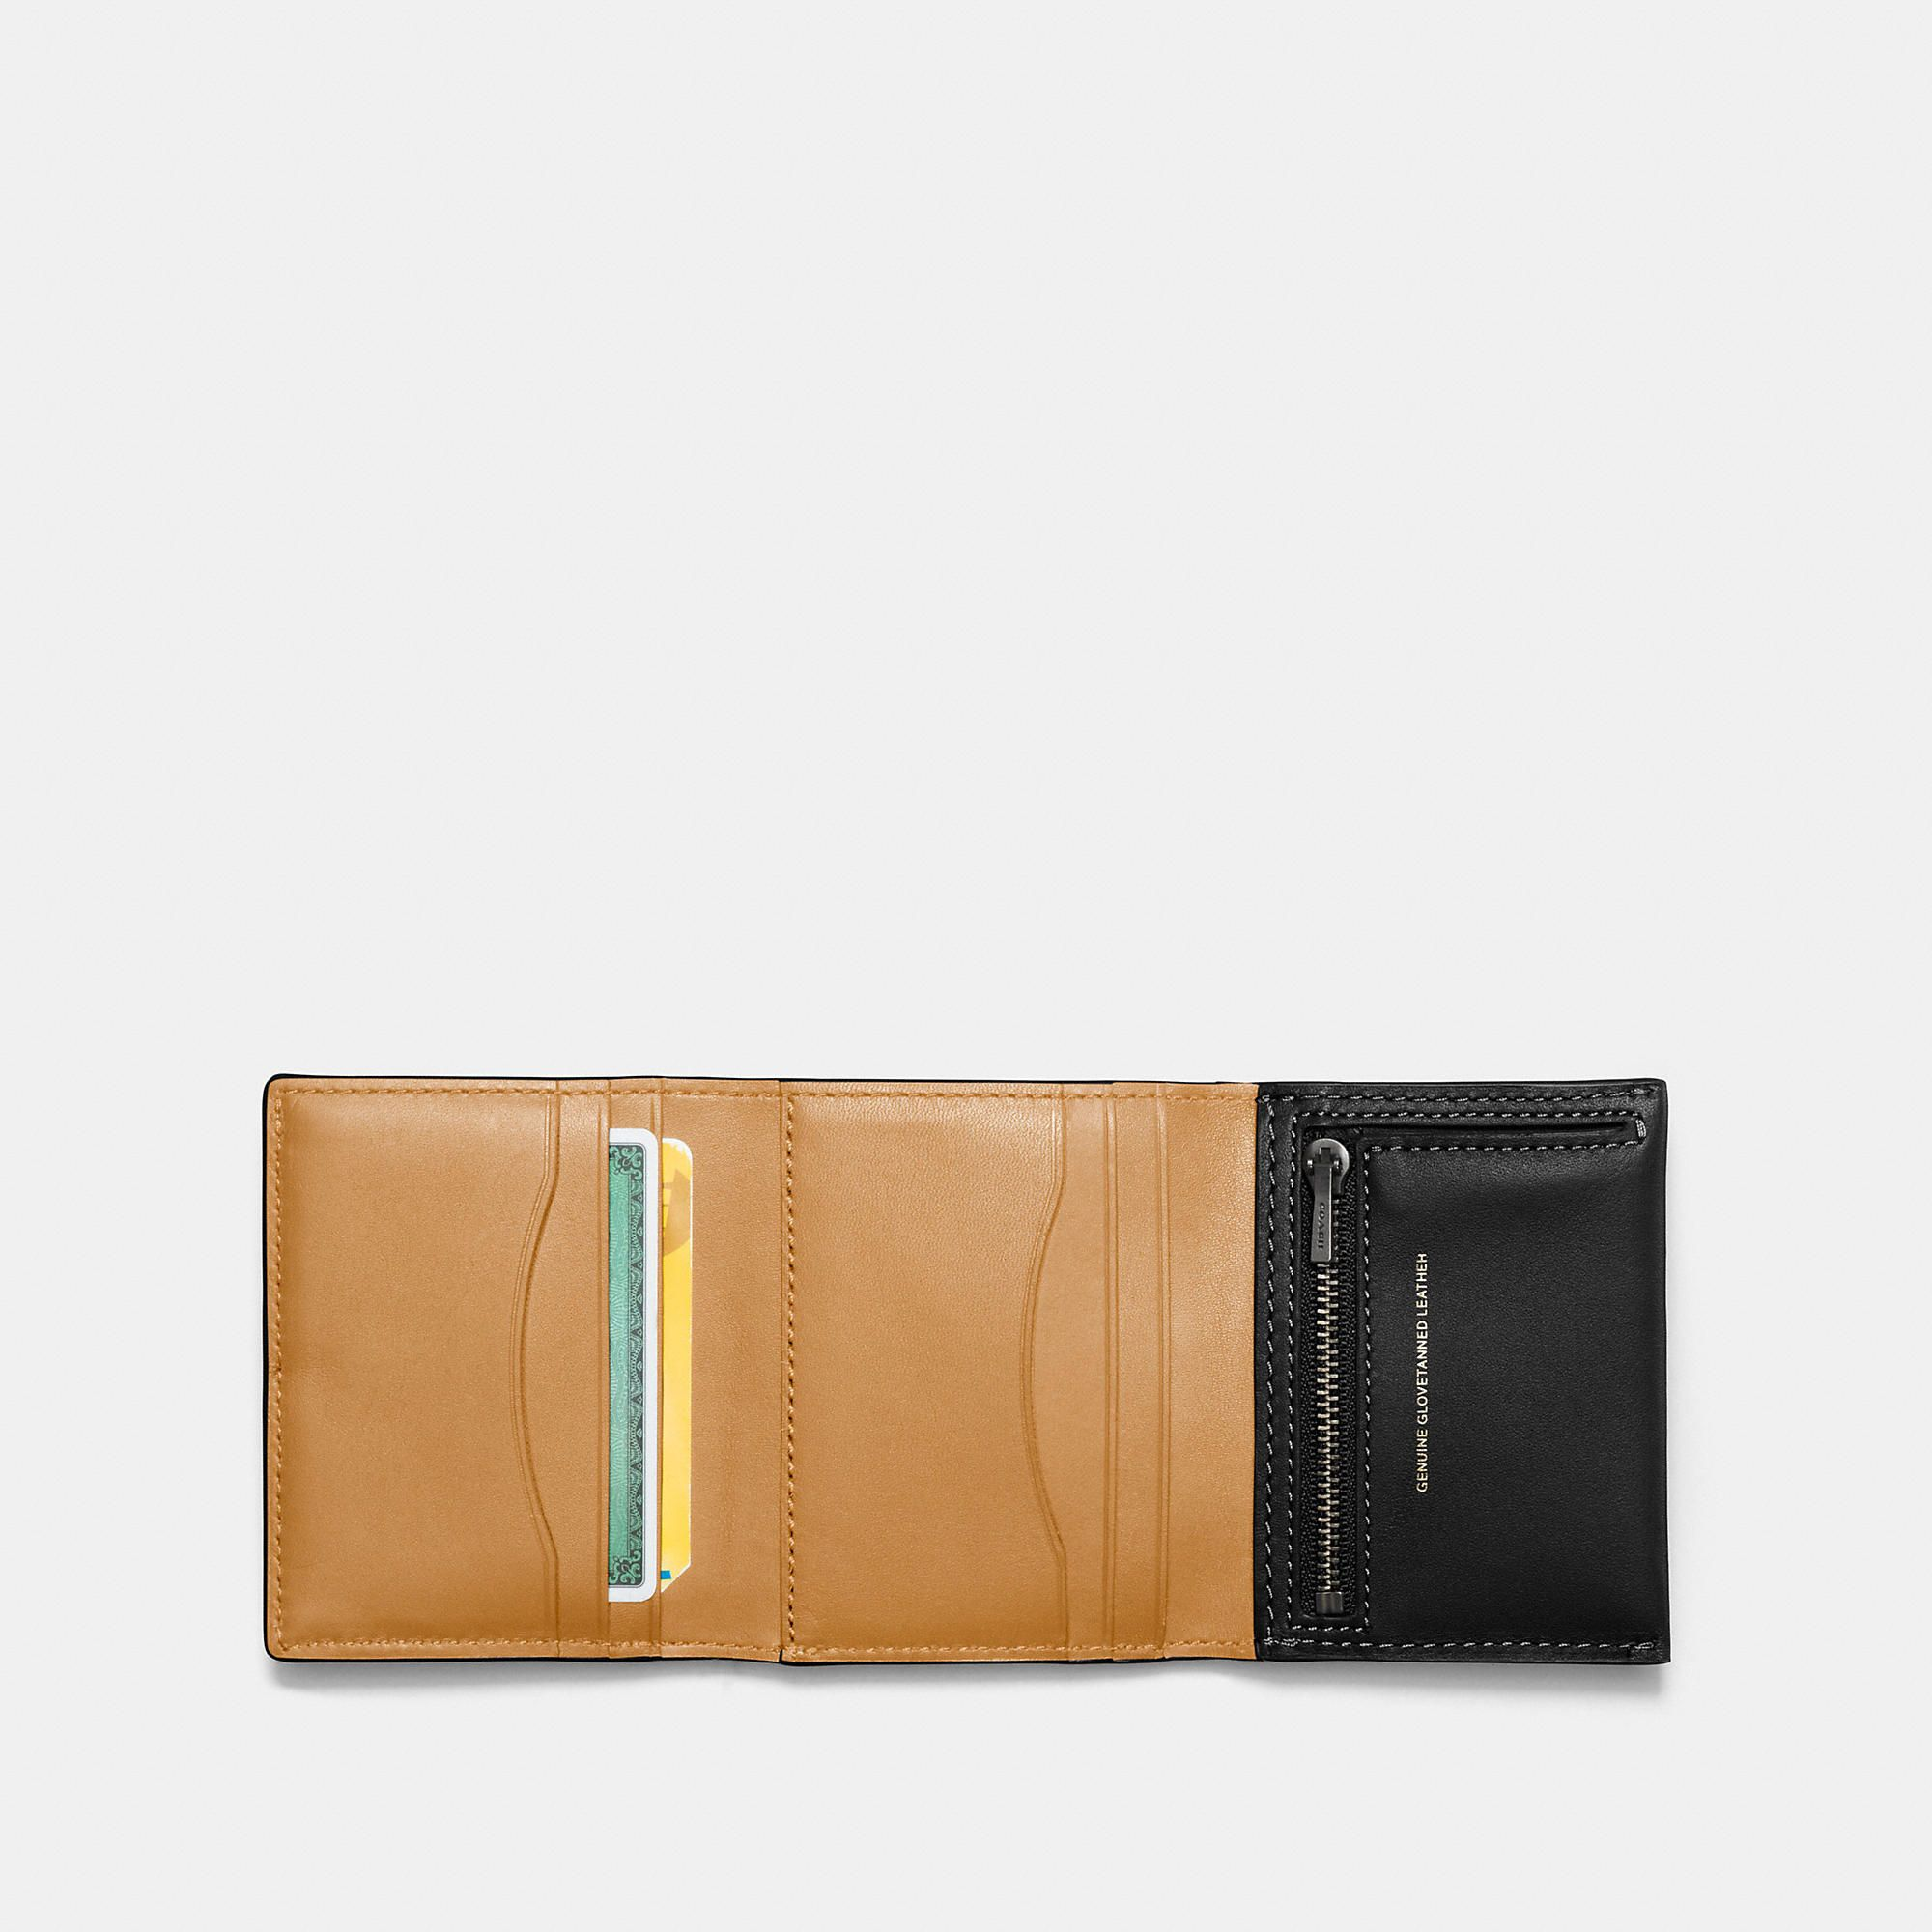 0a9f58efc1 Small trifold wallet in 2019 | Products | Wallet, Wallets for women ...